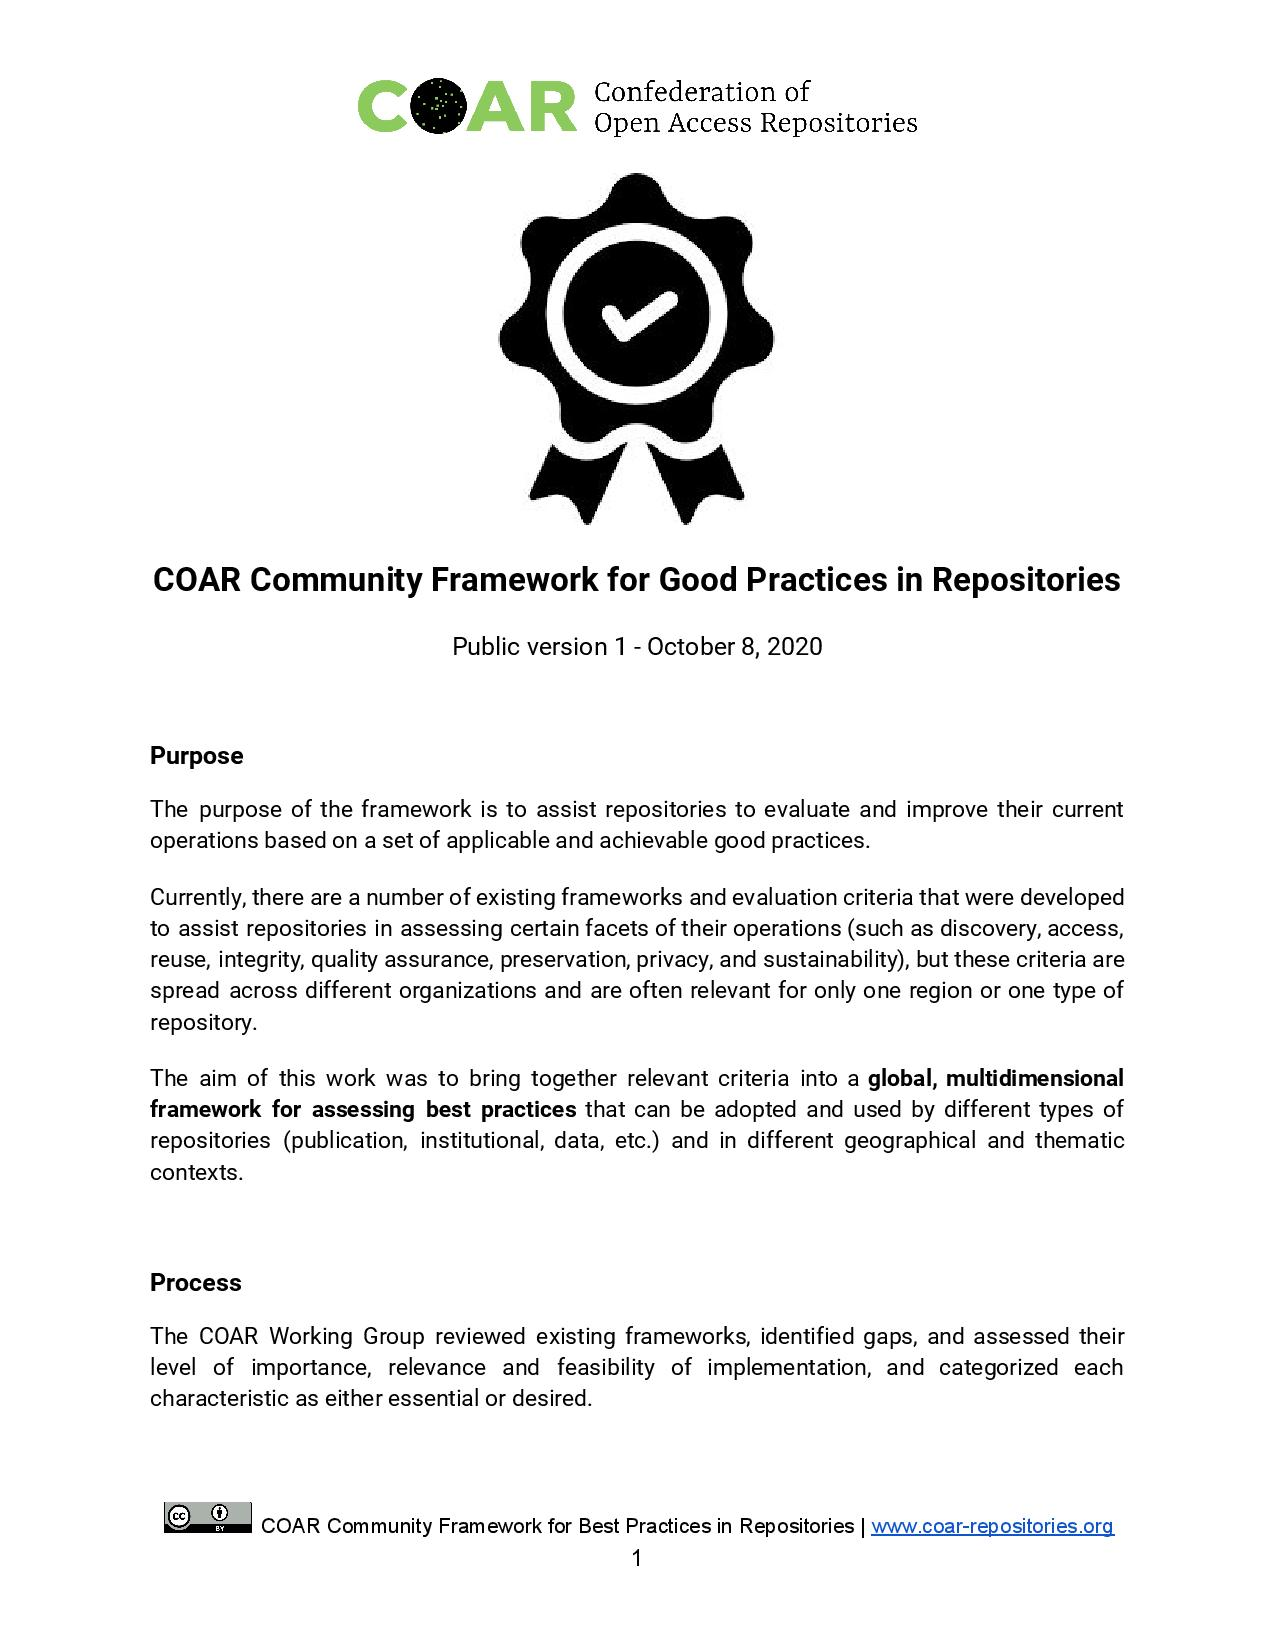 COAR best practices framework for repositories